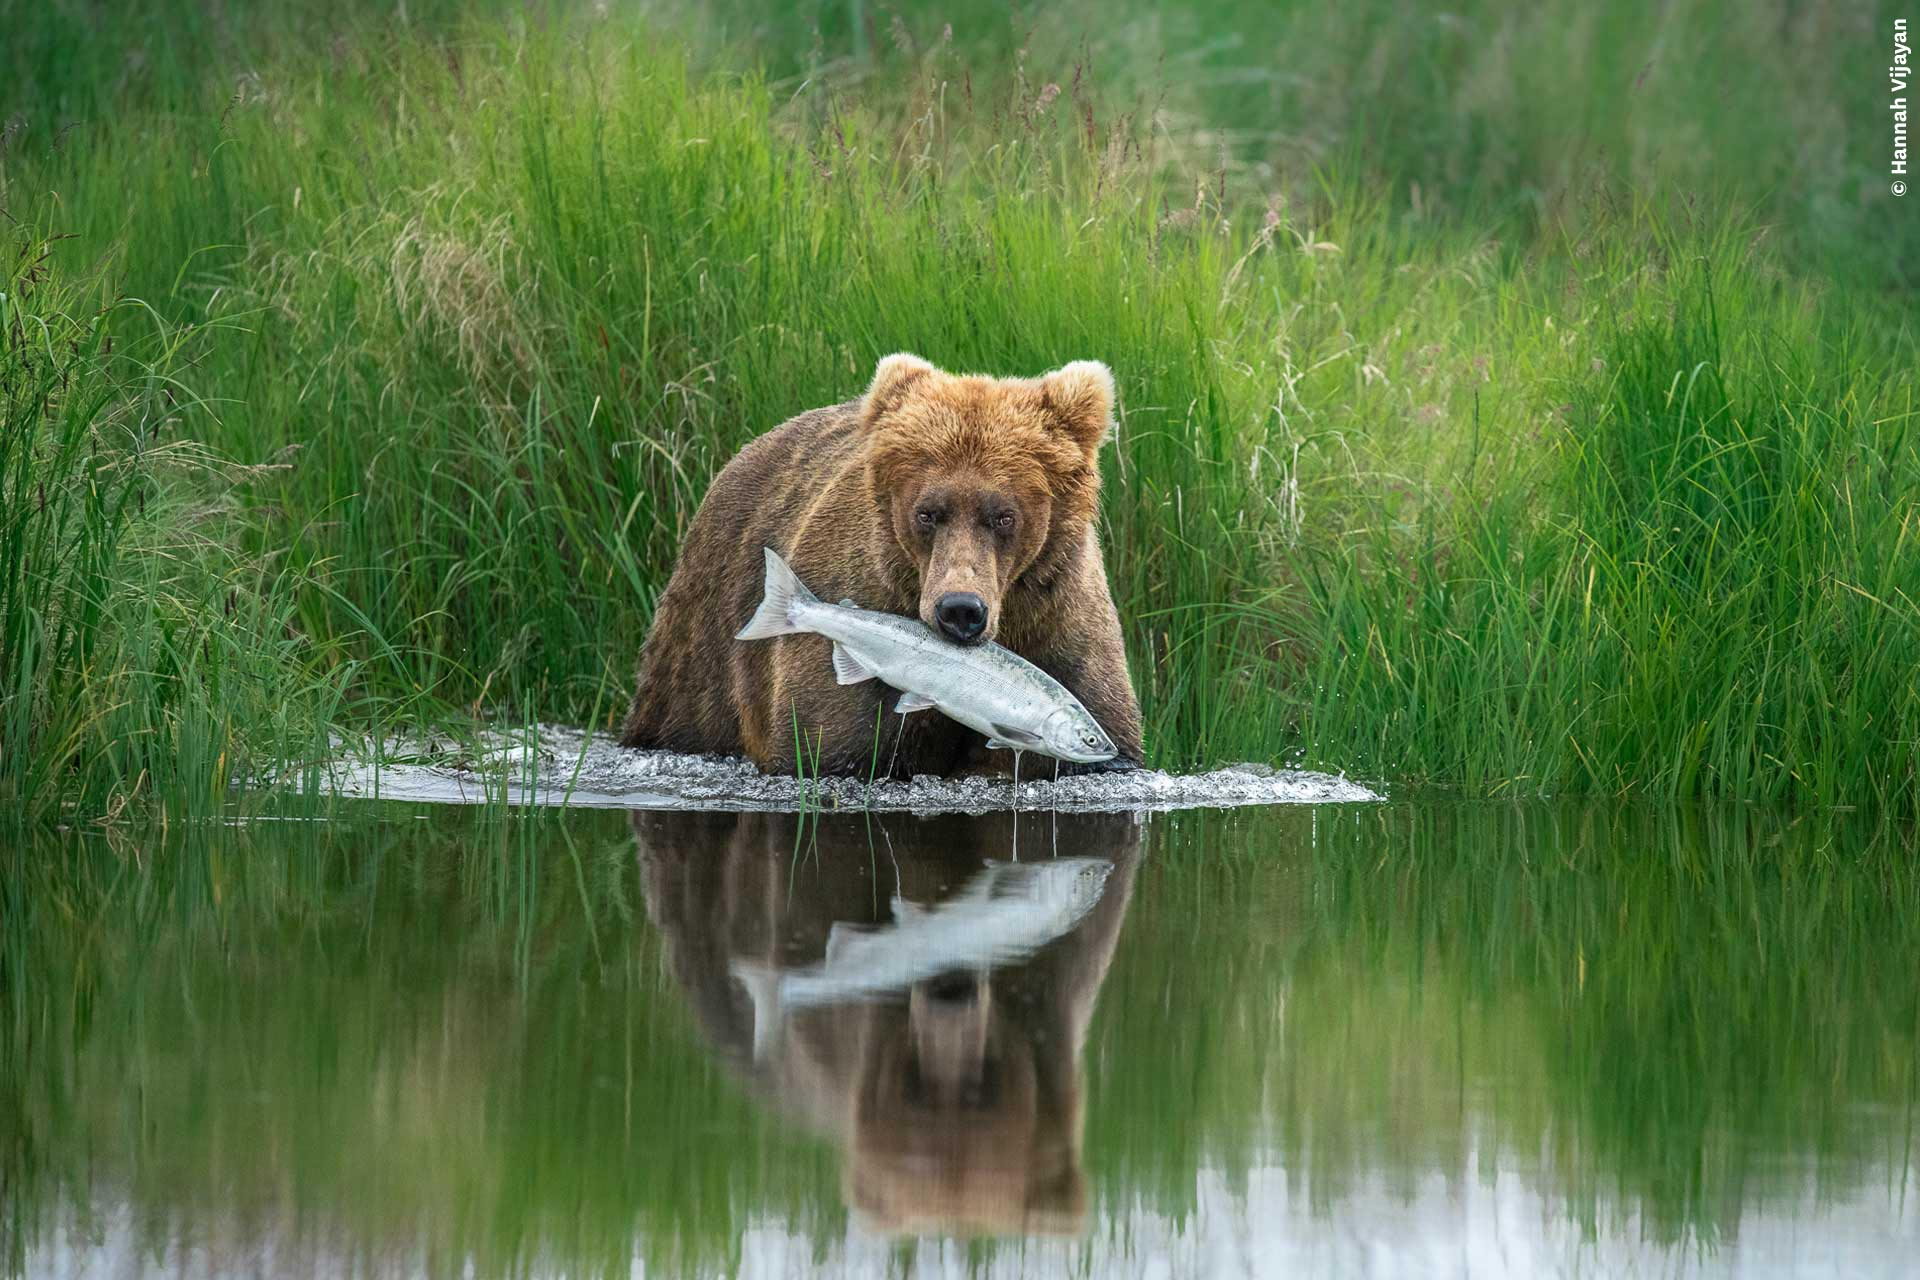 A bear catches a fish from a river